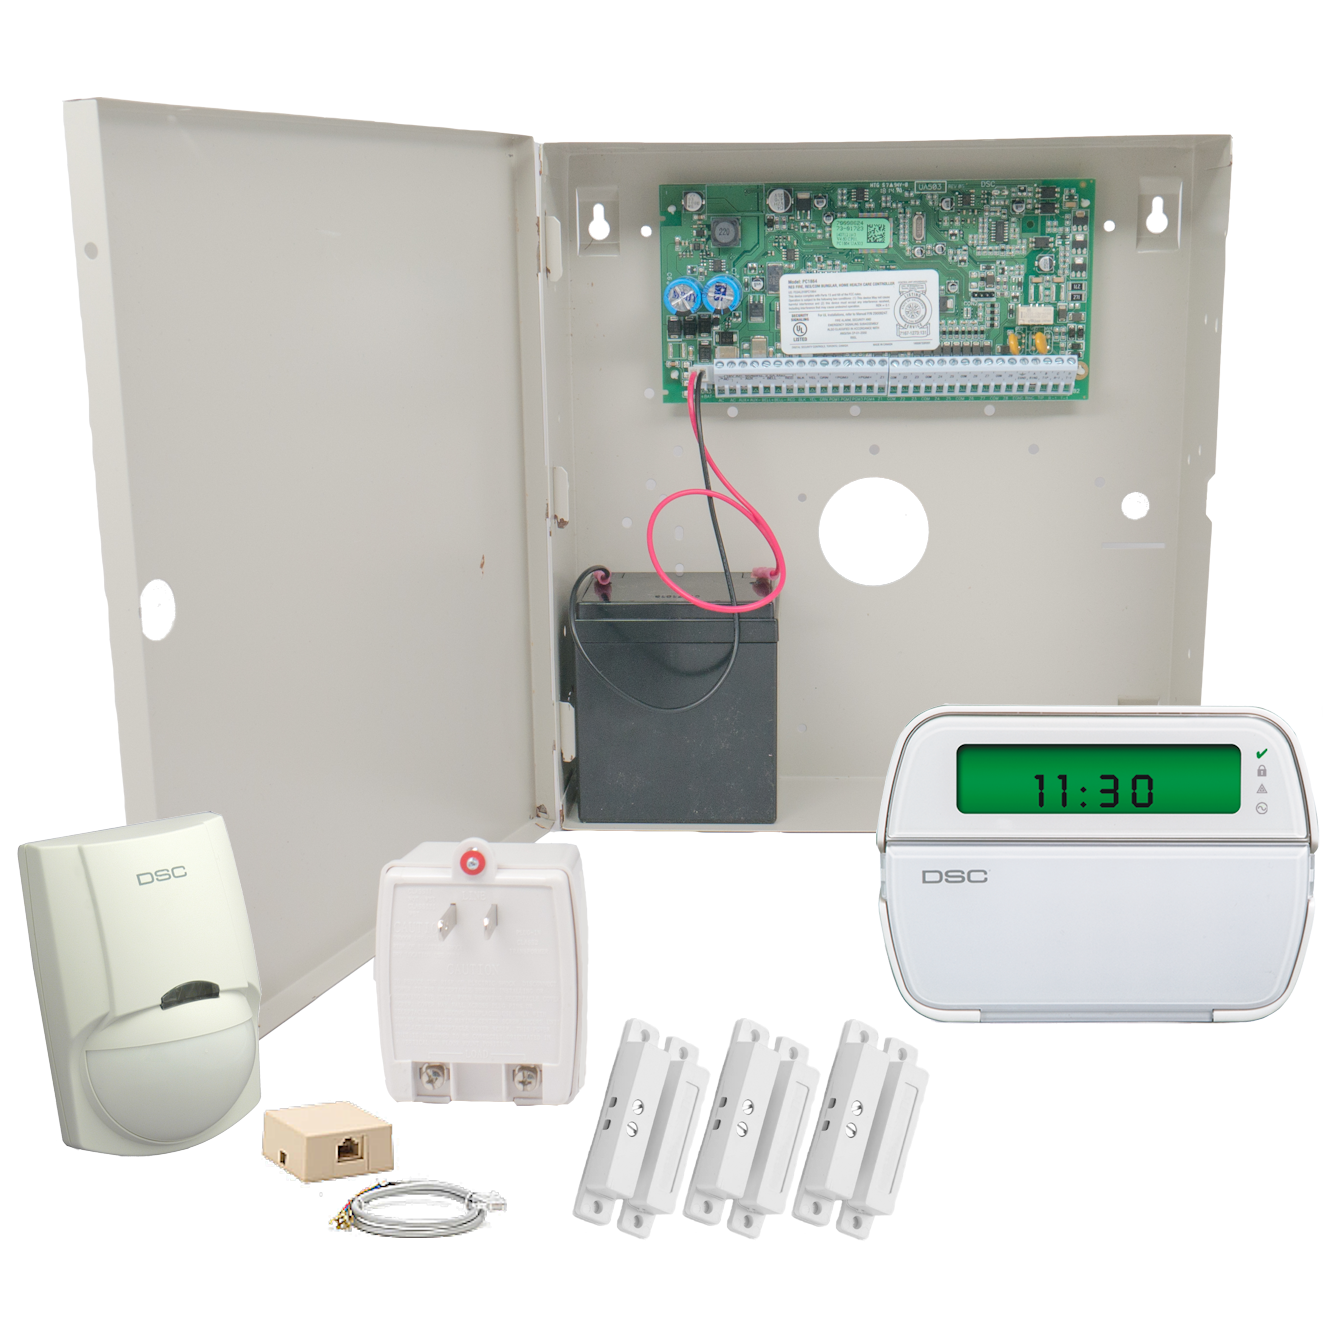 DSC PowerSeries PC1832 Phone Line & VoIP Alarm System - GEOARM Security